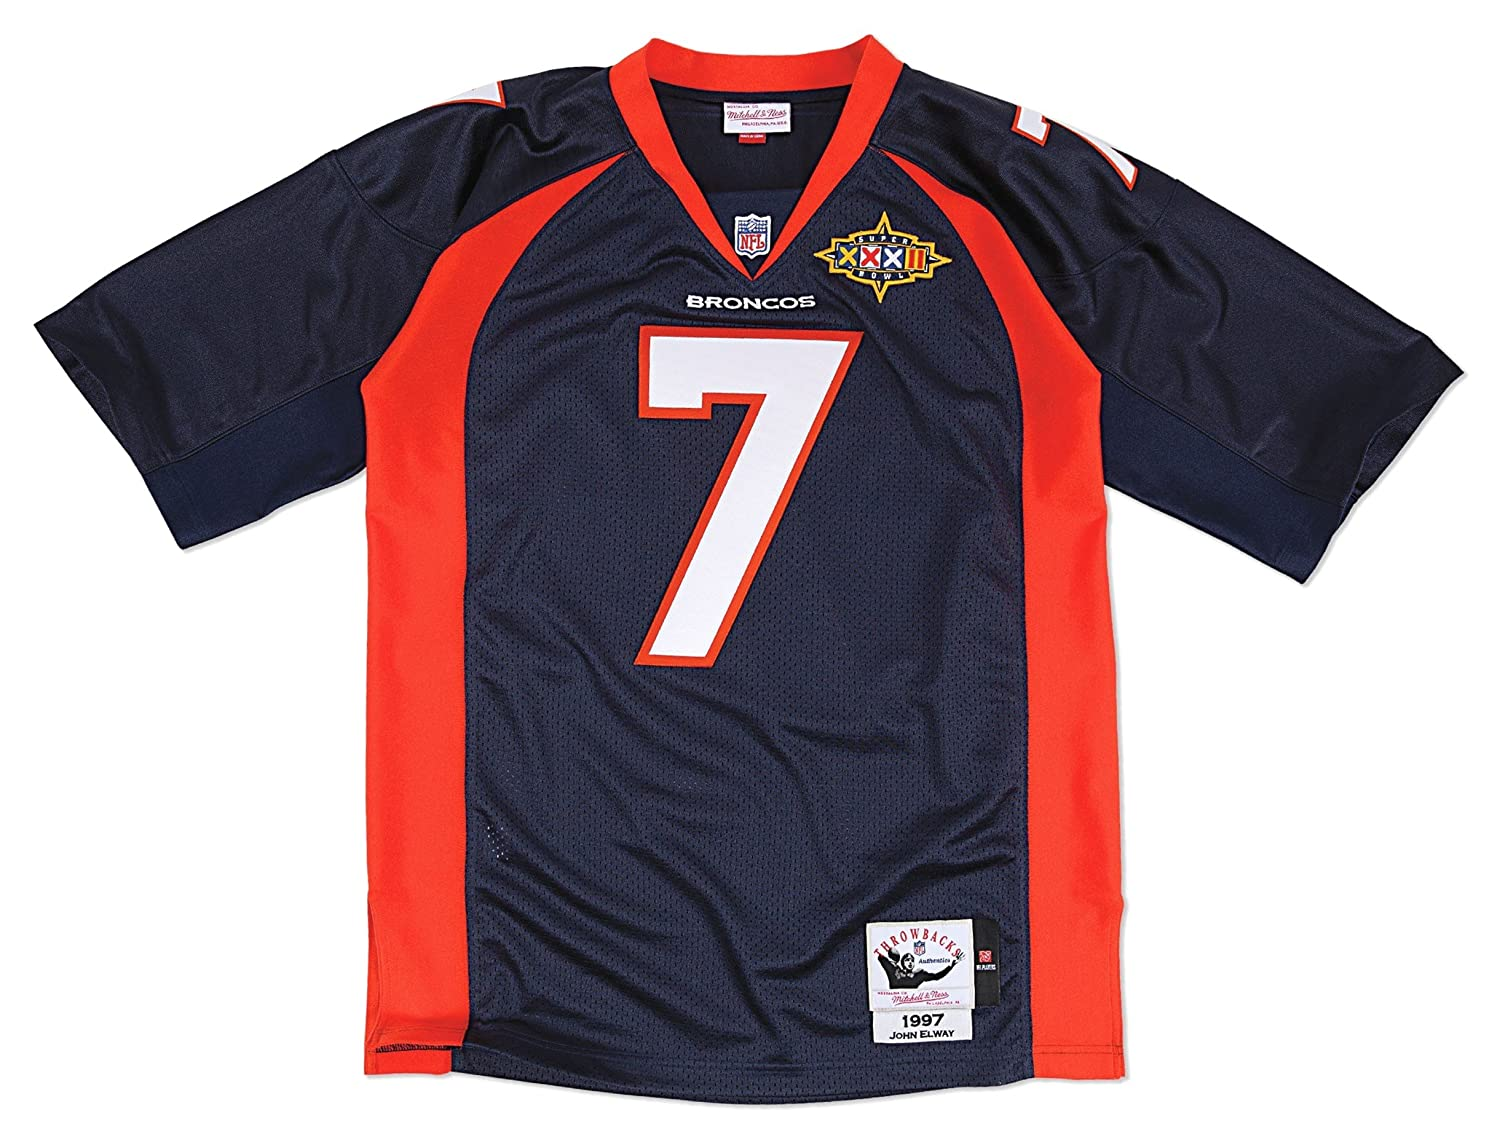 1997 John Elway Denver Broncos Mitchell & NessホームAuthentic Jerseyメンズ XXL/52  B00UGHGYUM